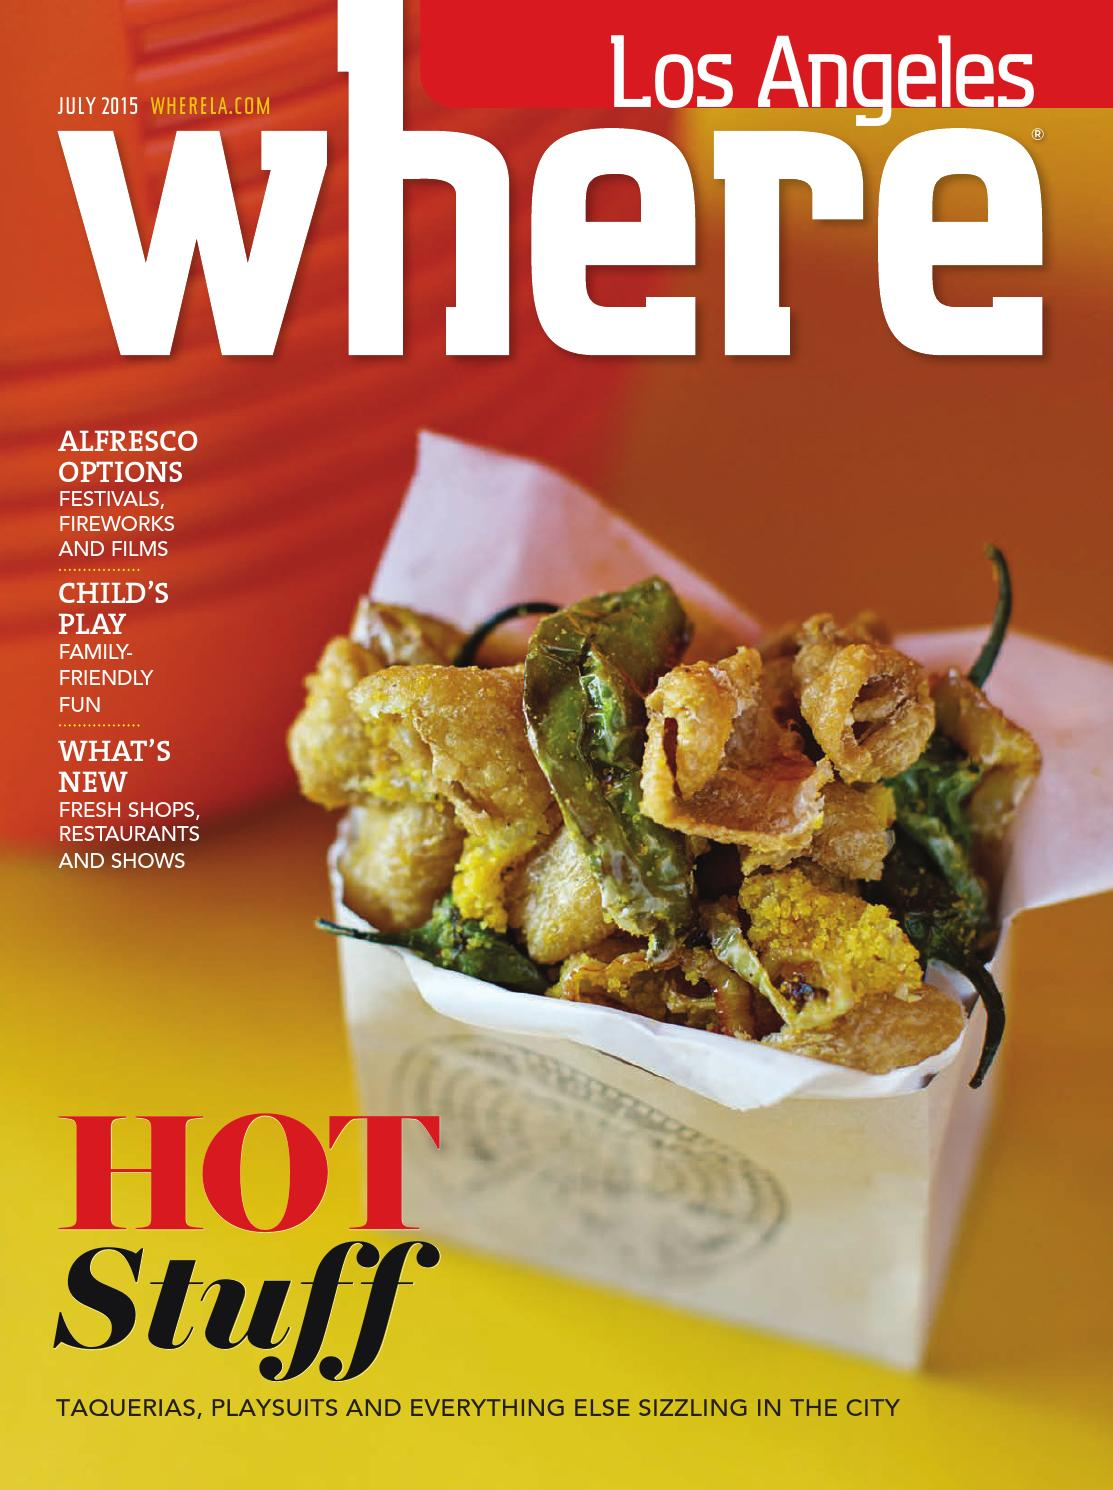 Where Los Angeles Magazine July 2015 By Socalmedia Issuu Lotteria Voucher Menu Crispy Chicken Rice Set